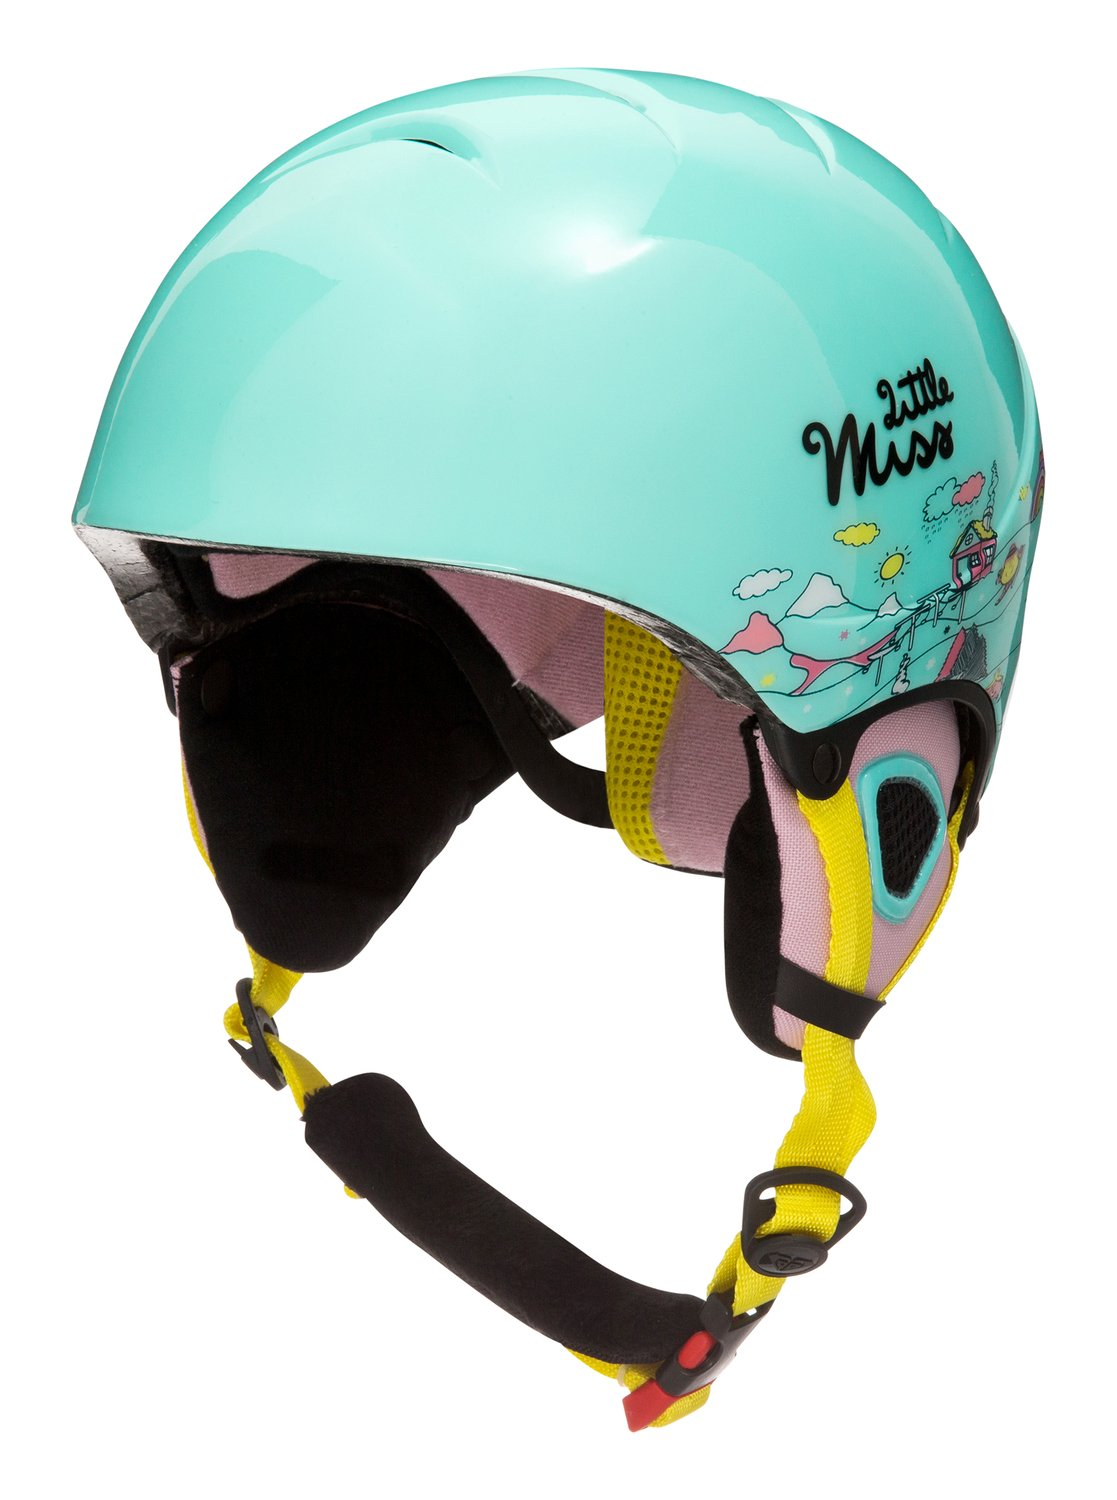 Misty Little Miss - Casque de snowboard/ski pour Fille - Roxy